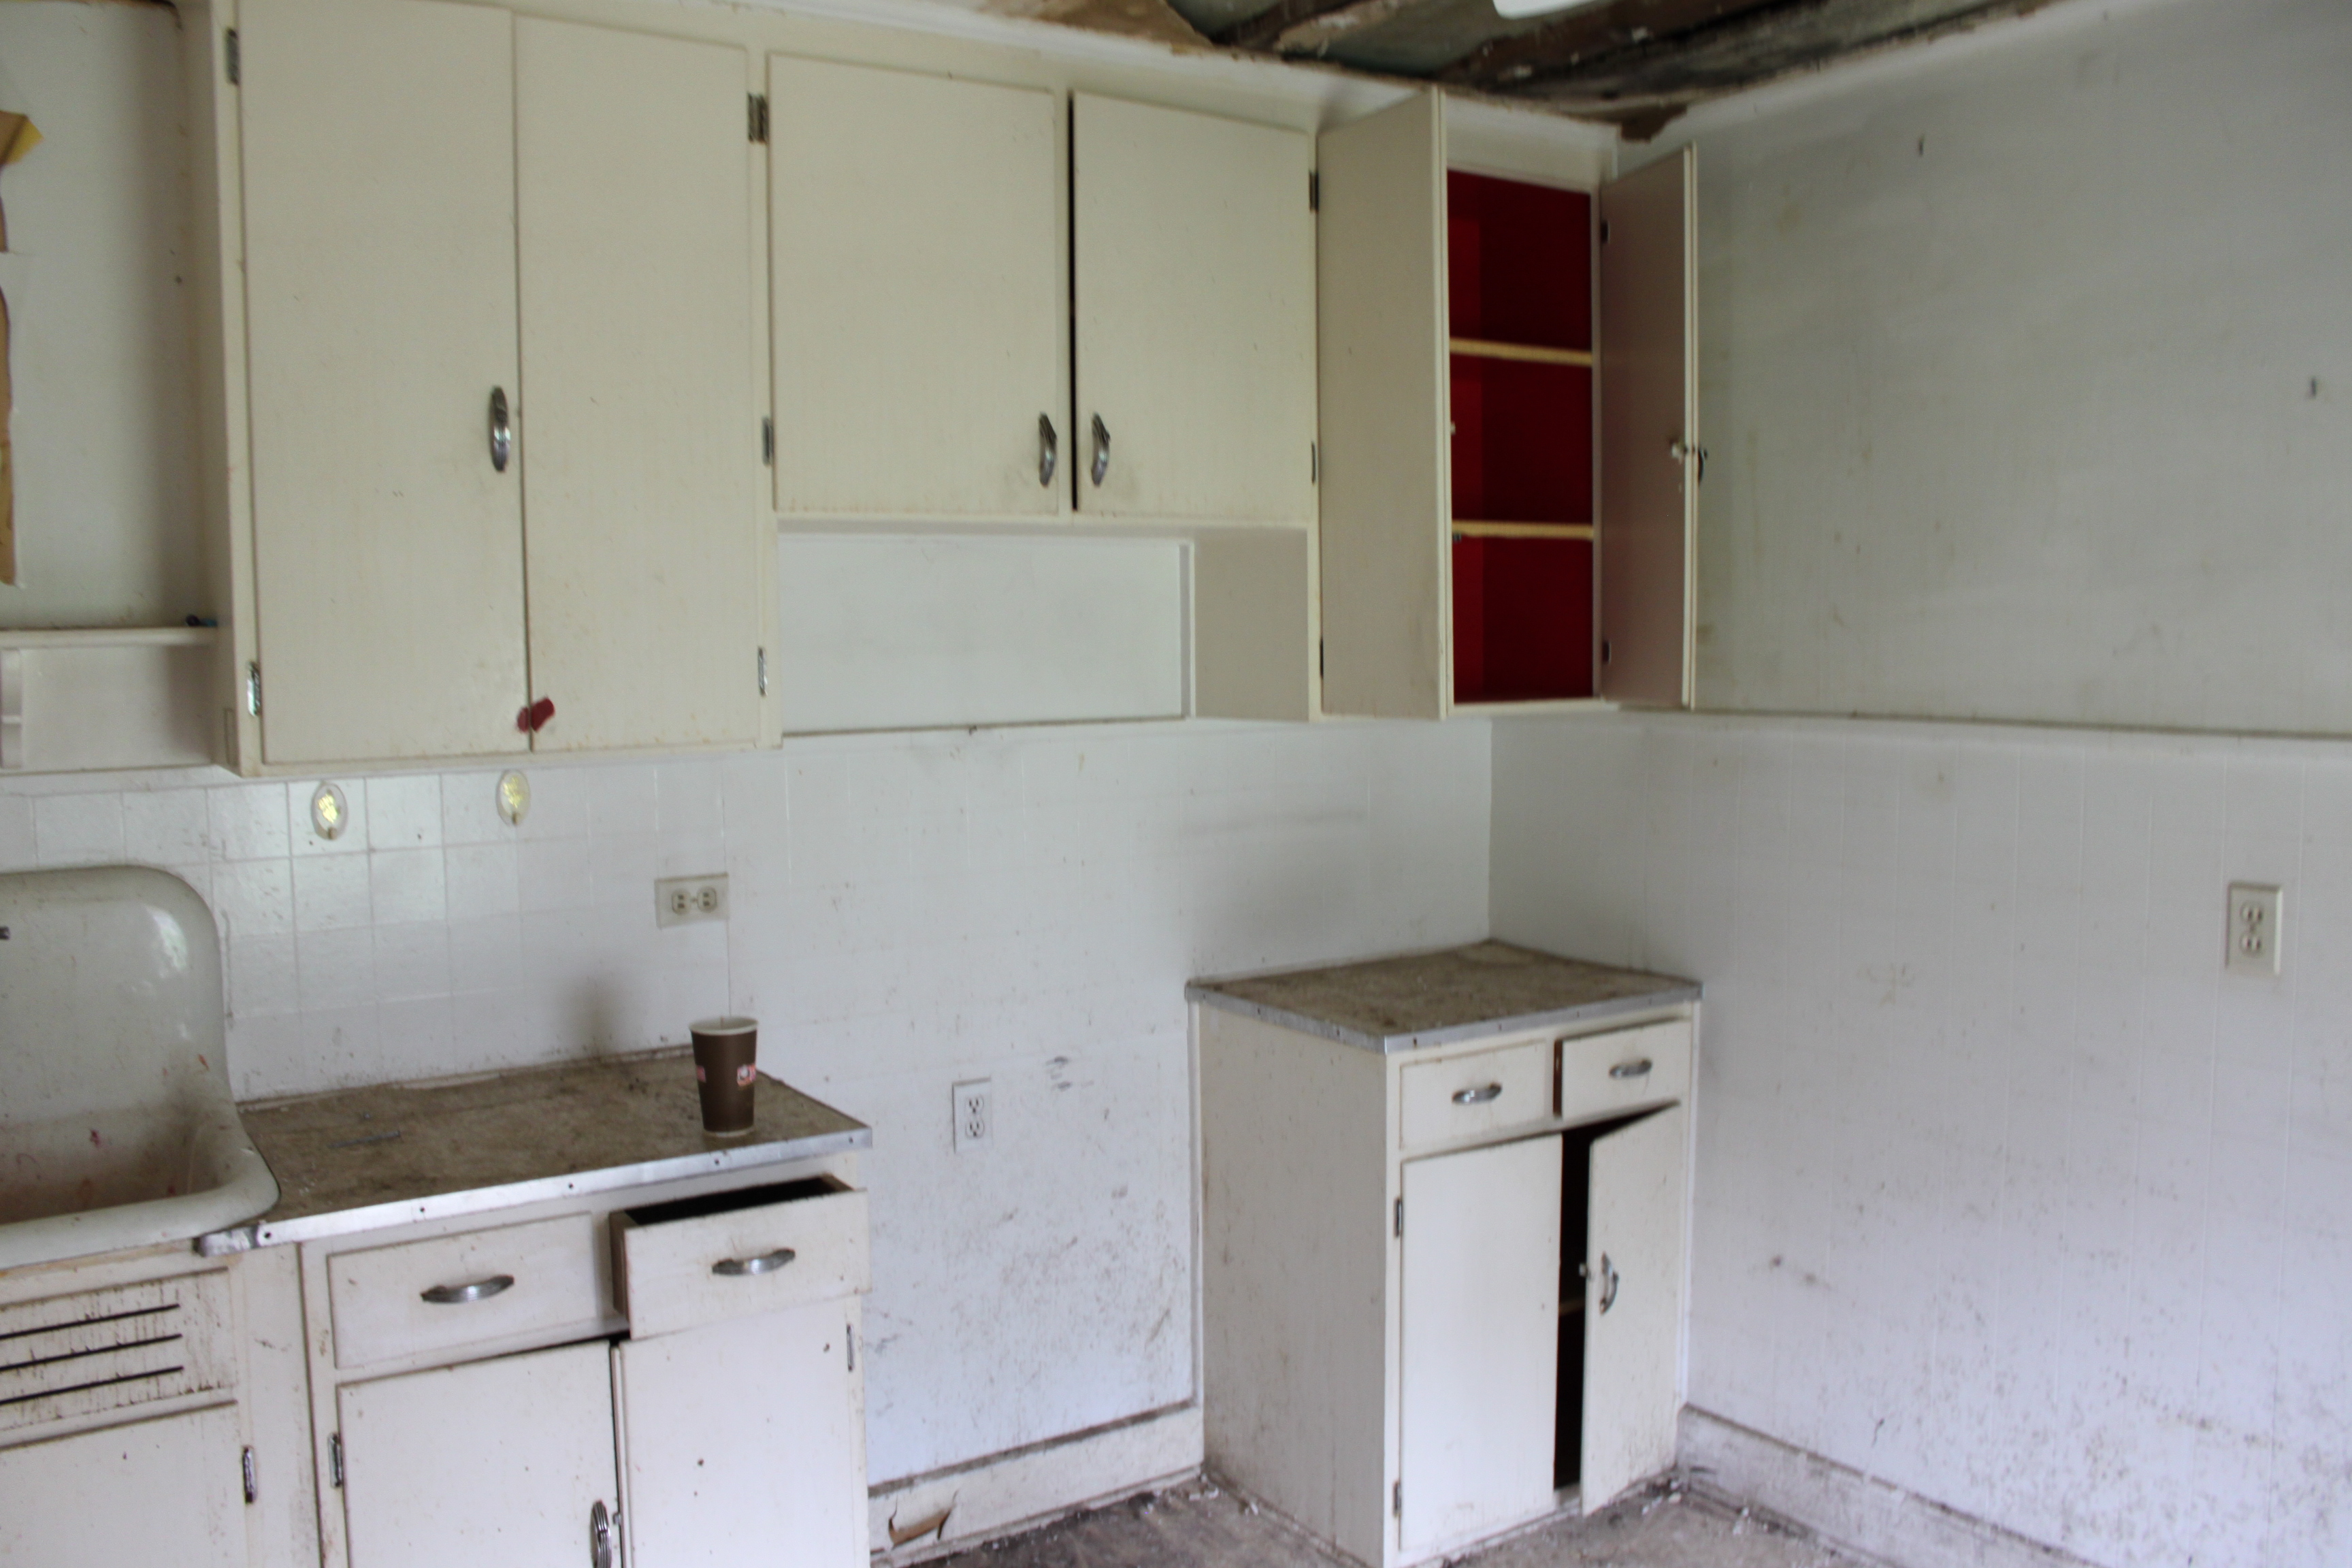 DINGY OLD KITCHEN